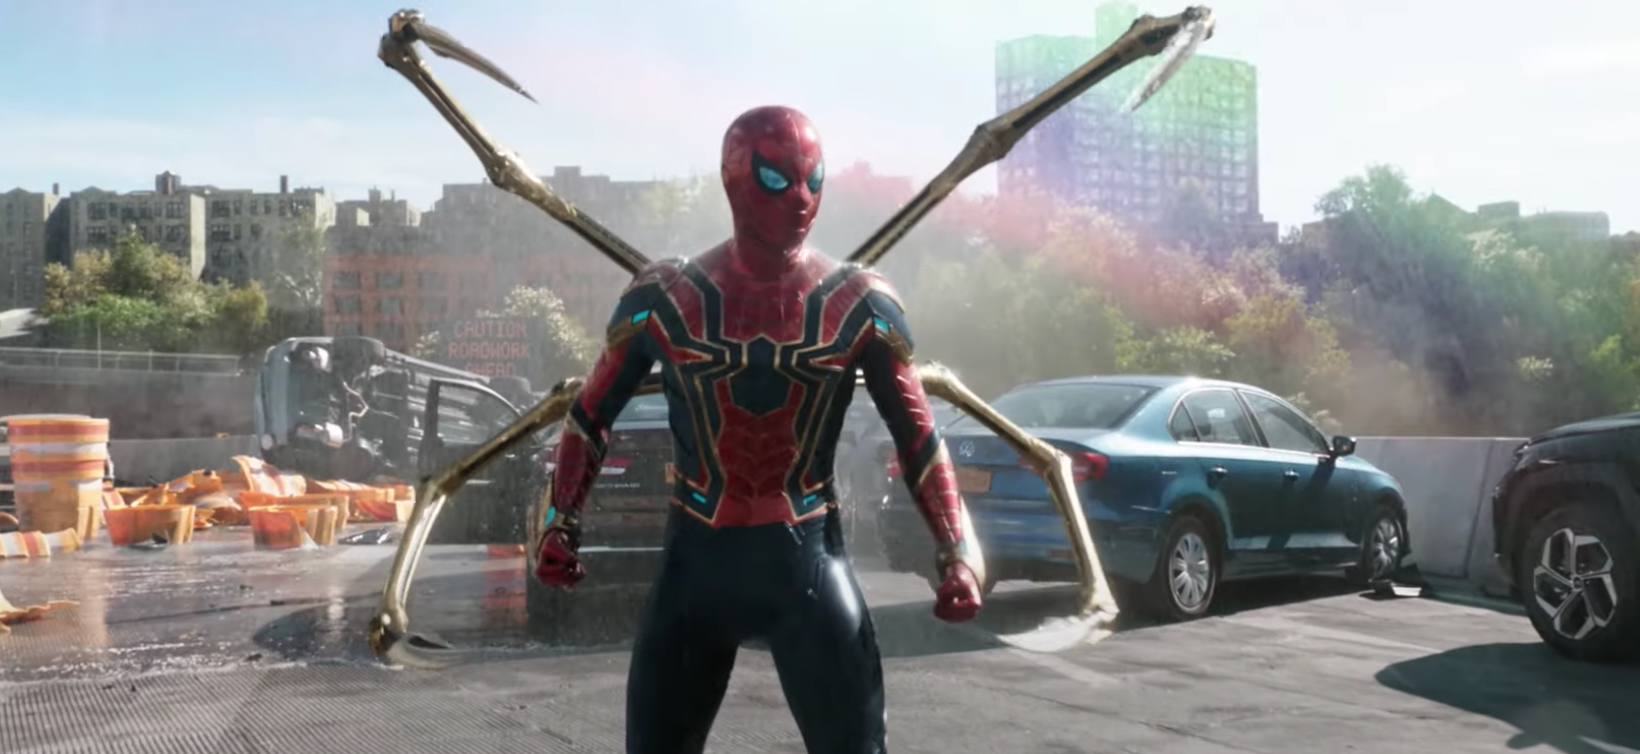 WATCH] Official Trailer for Spider-Man: No Way Home